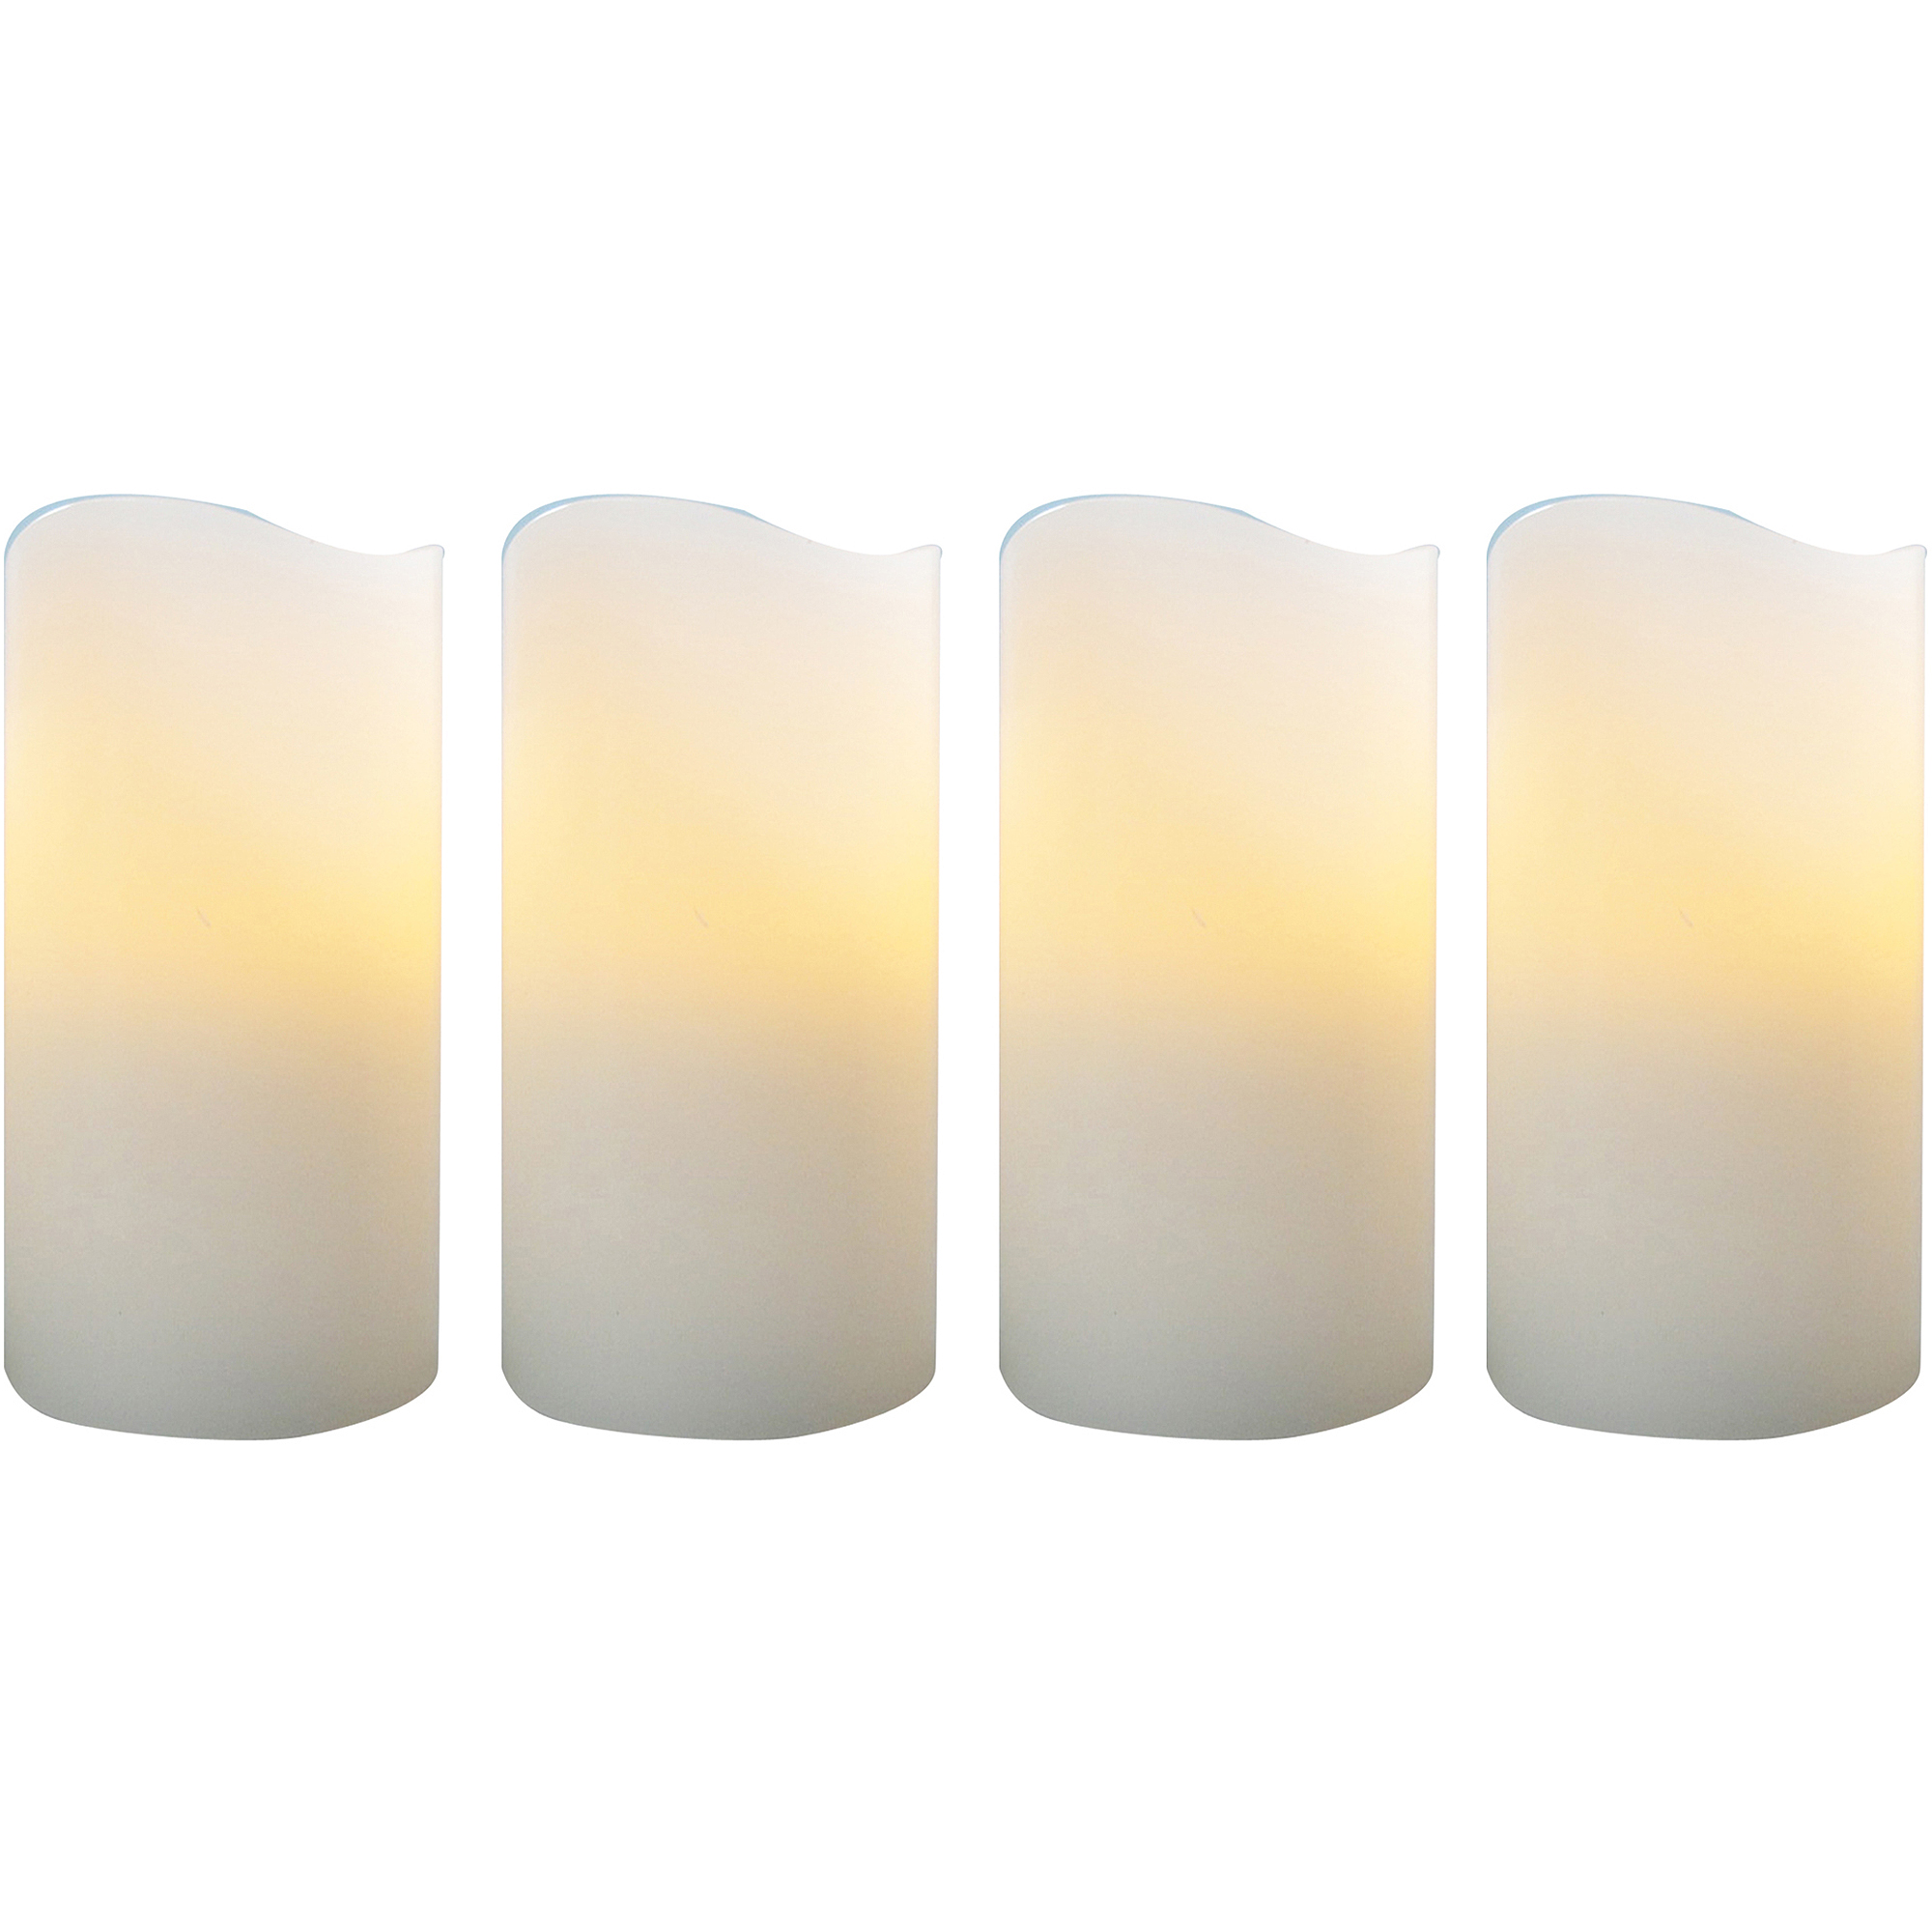 Koyal Wholesale Candles & Candle Holders